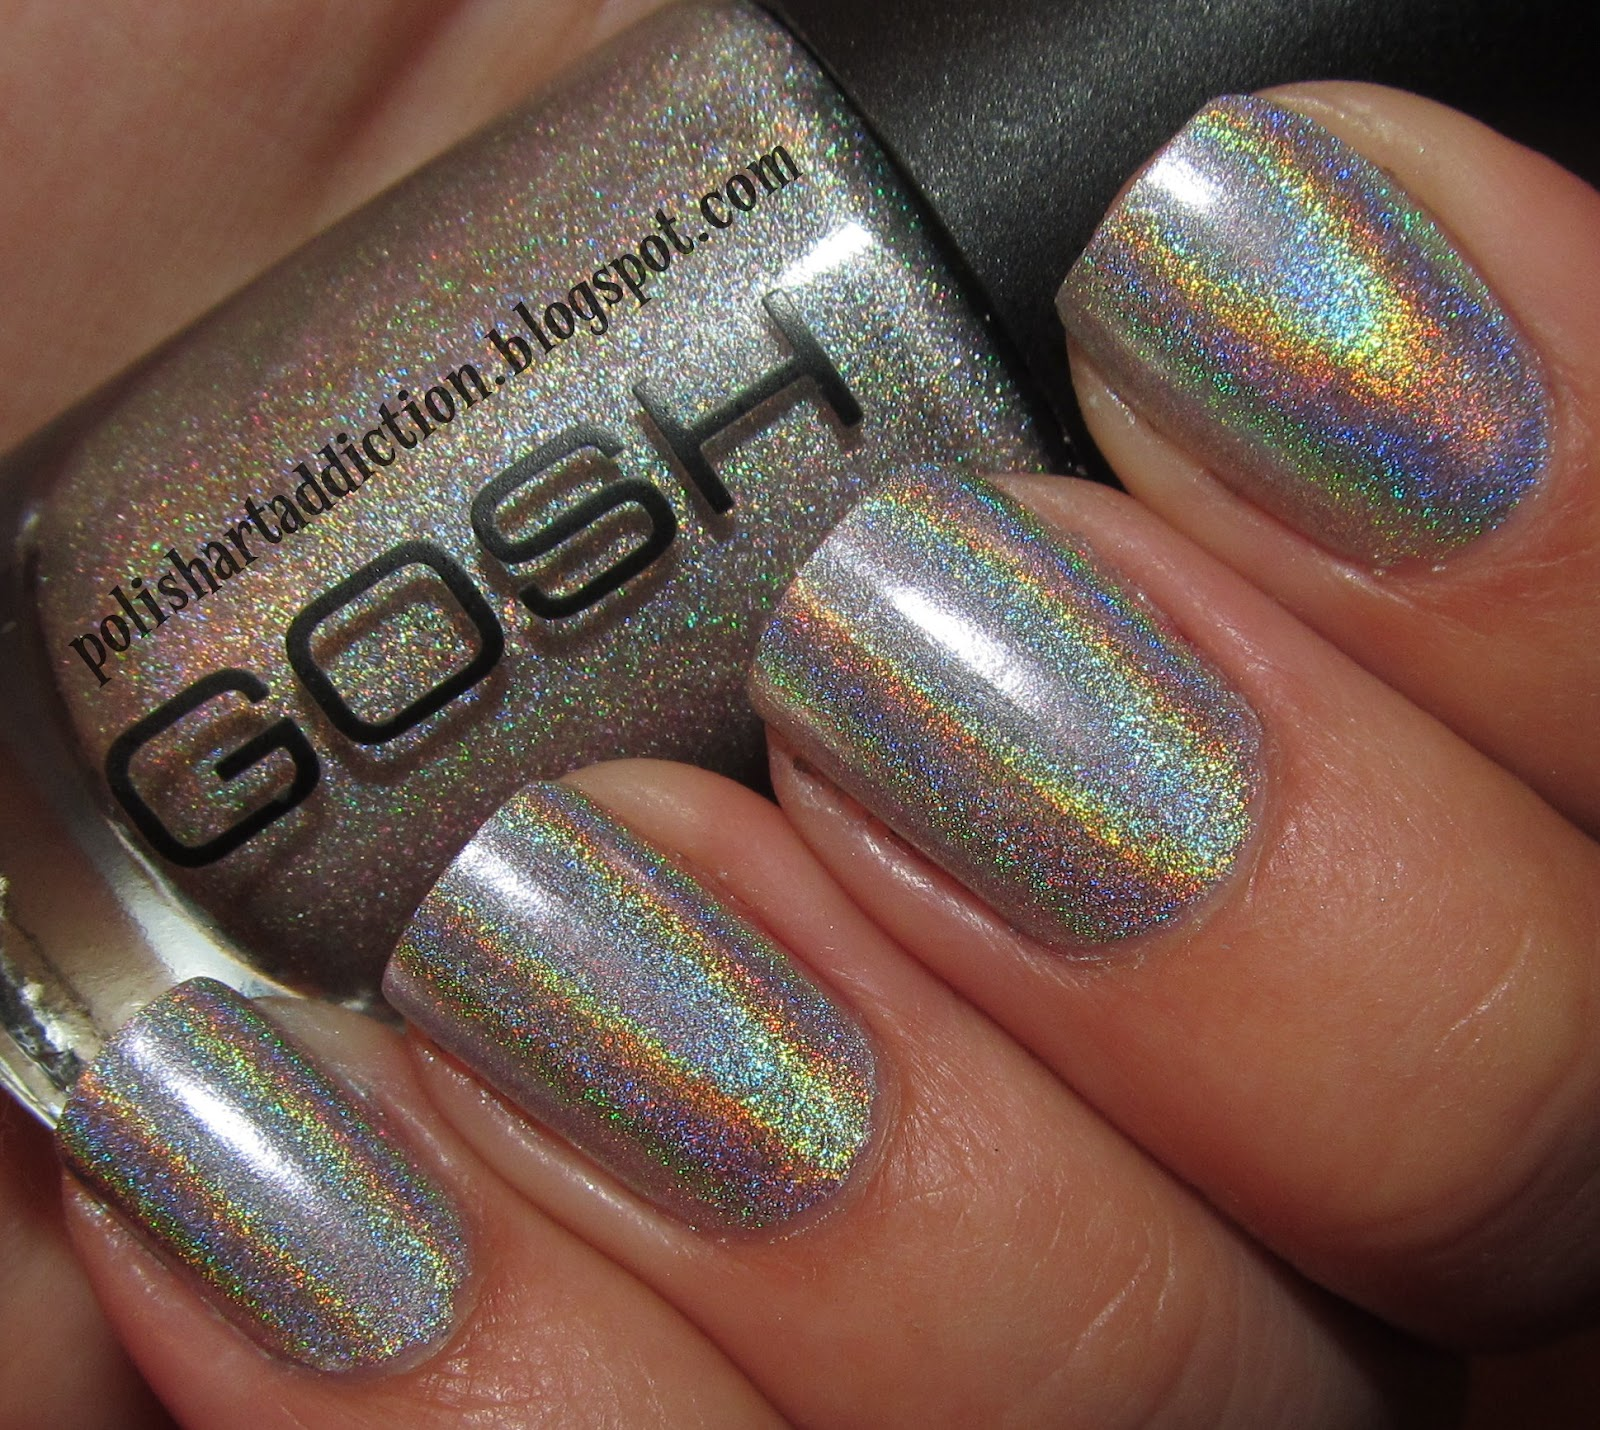 GOSH - Holographic